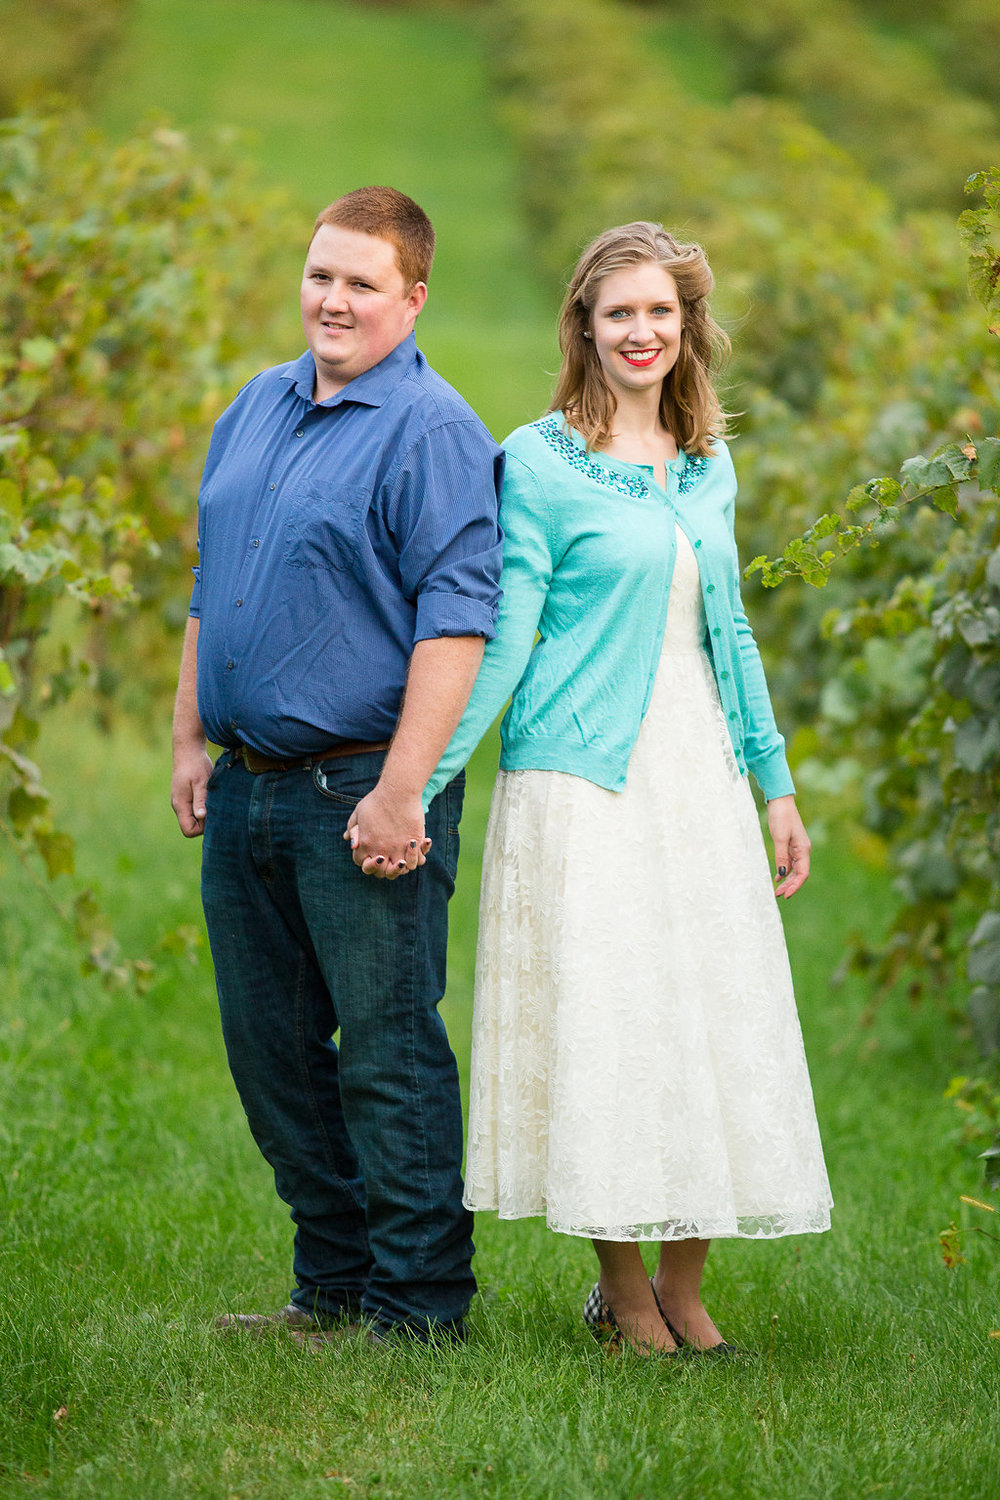 Engagement Sessions at Vineyards